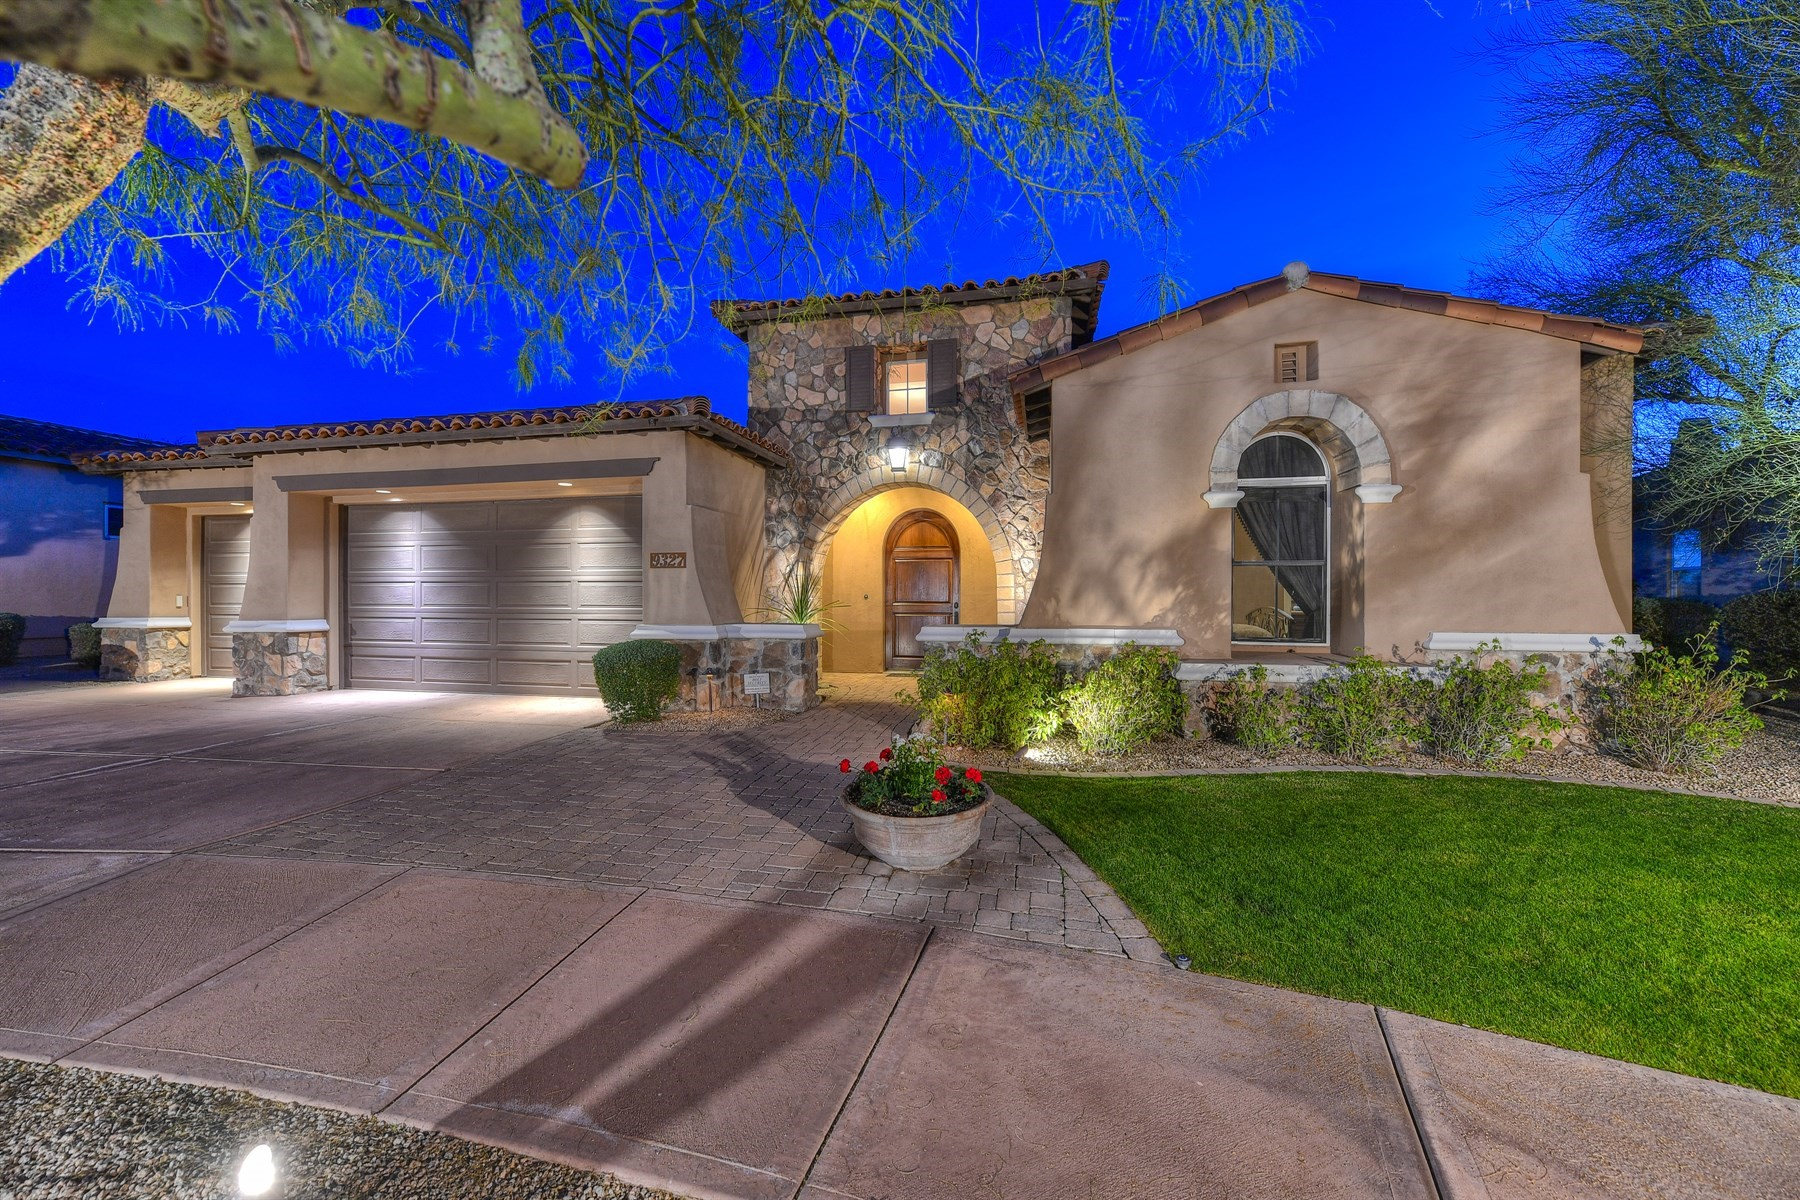 단독 가정 주택 용 매매 에 Highly upgraded home in desirable DC Ranch 9327 E Mountain Spring Rd Scottsdale, 아리조나, 85255 미국